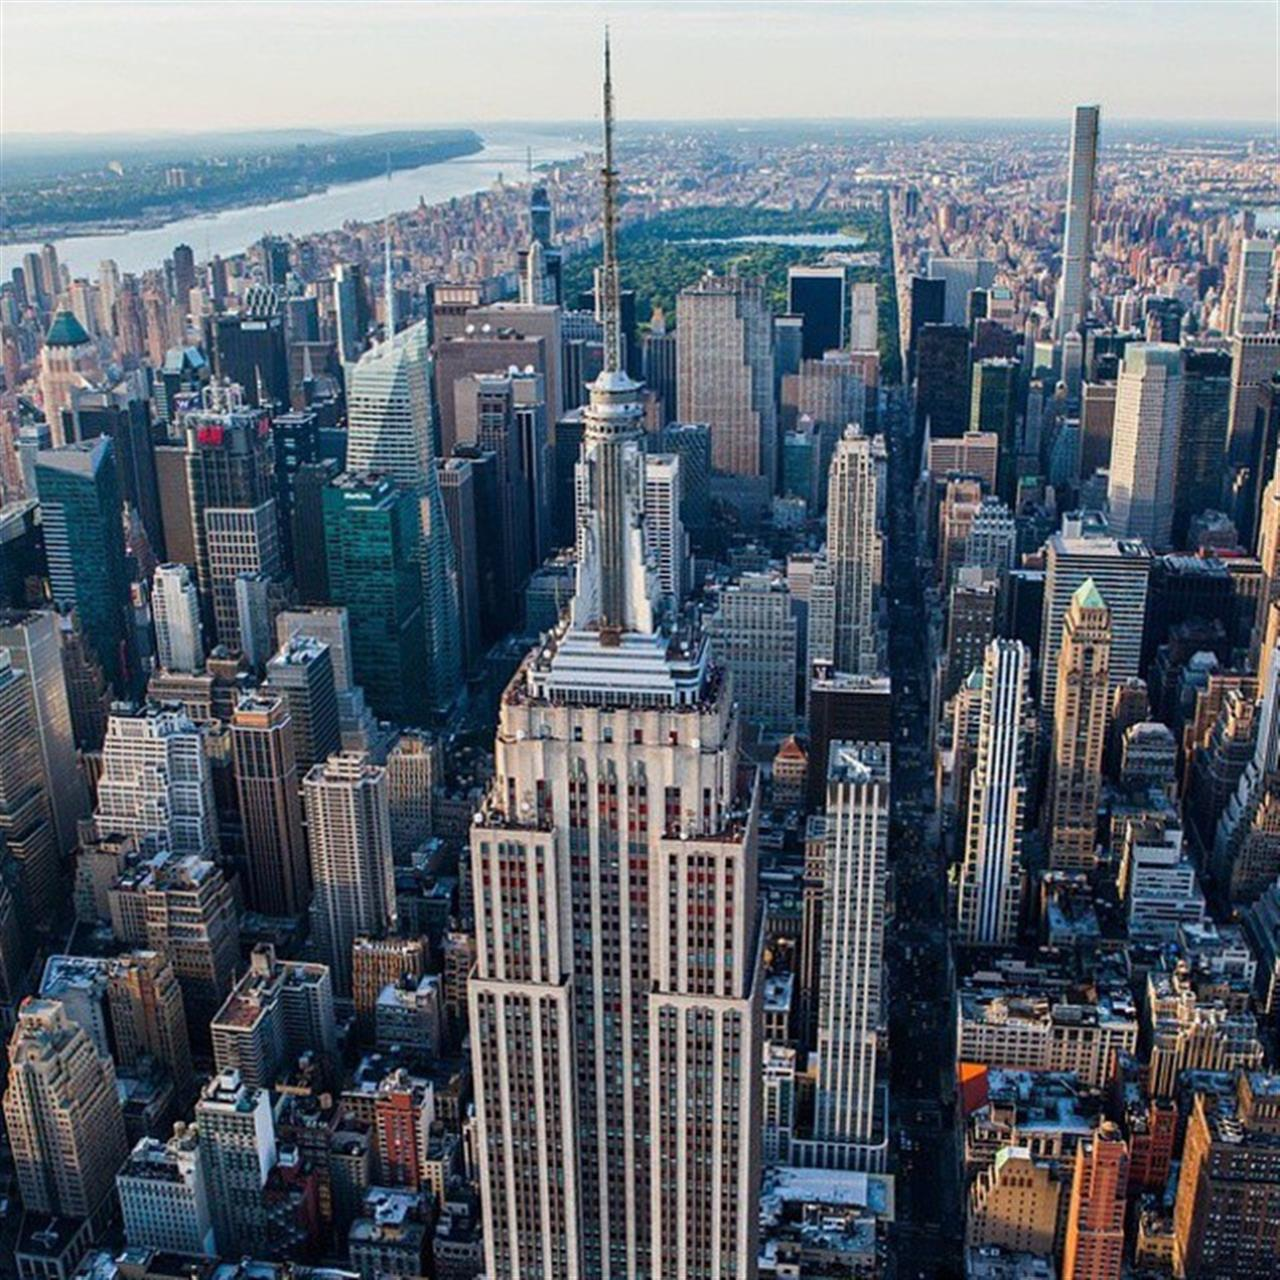 Above it all in #Midtown. (Photo from @anthonyquintano)